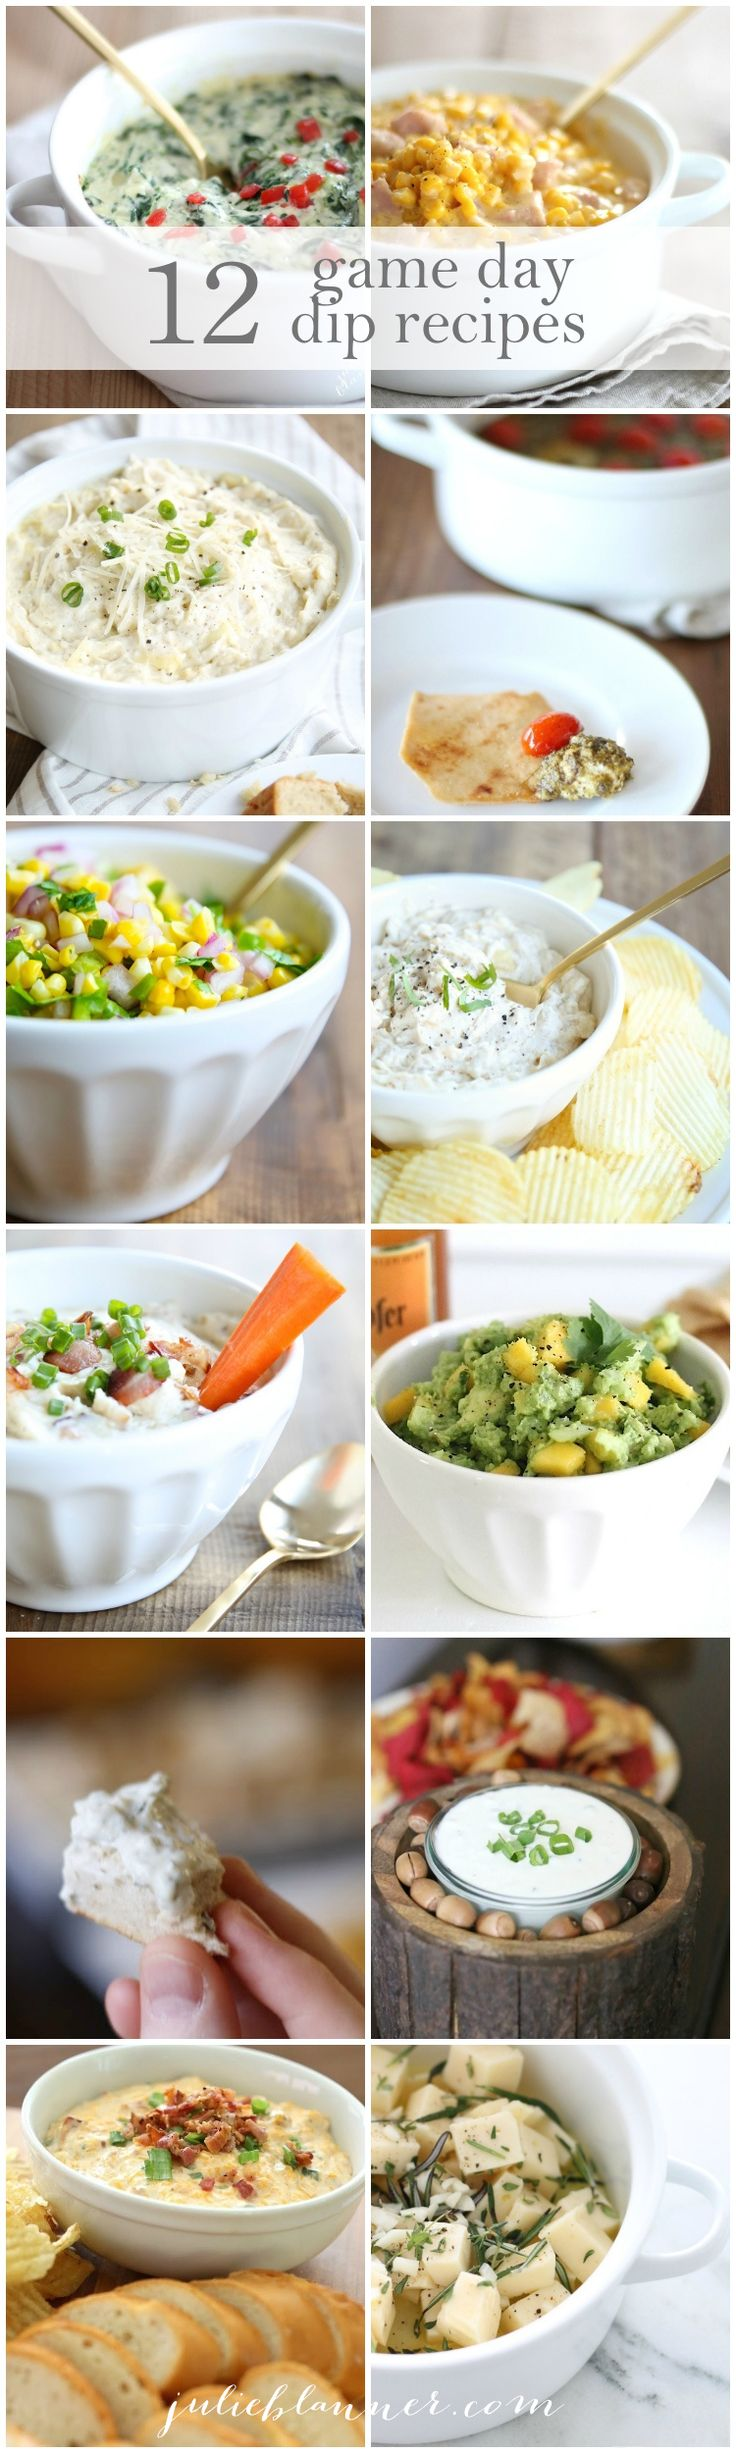 12 easy game day dip recipes that you can prepare in 10 minutes or less!